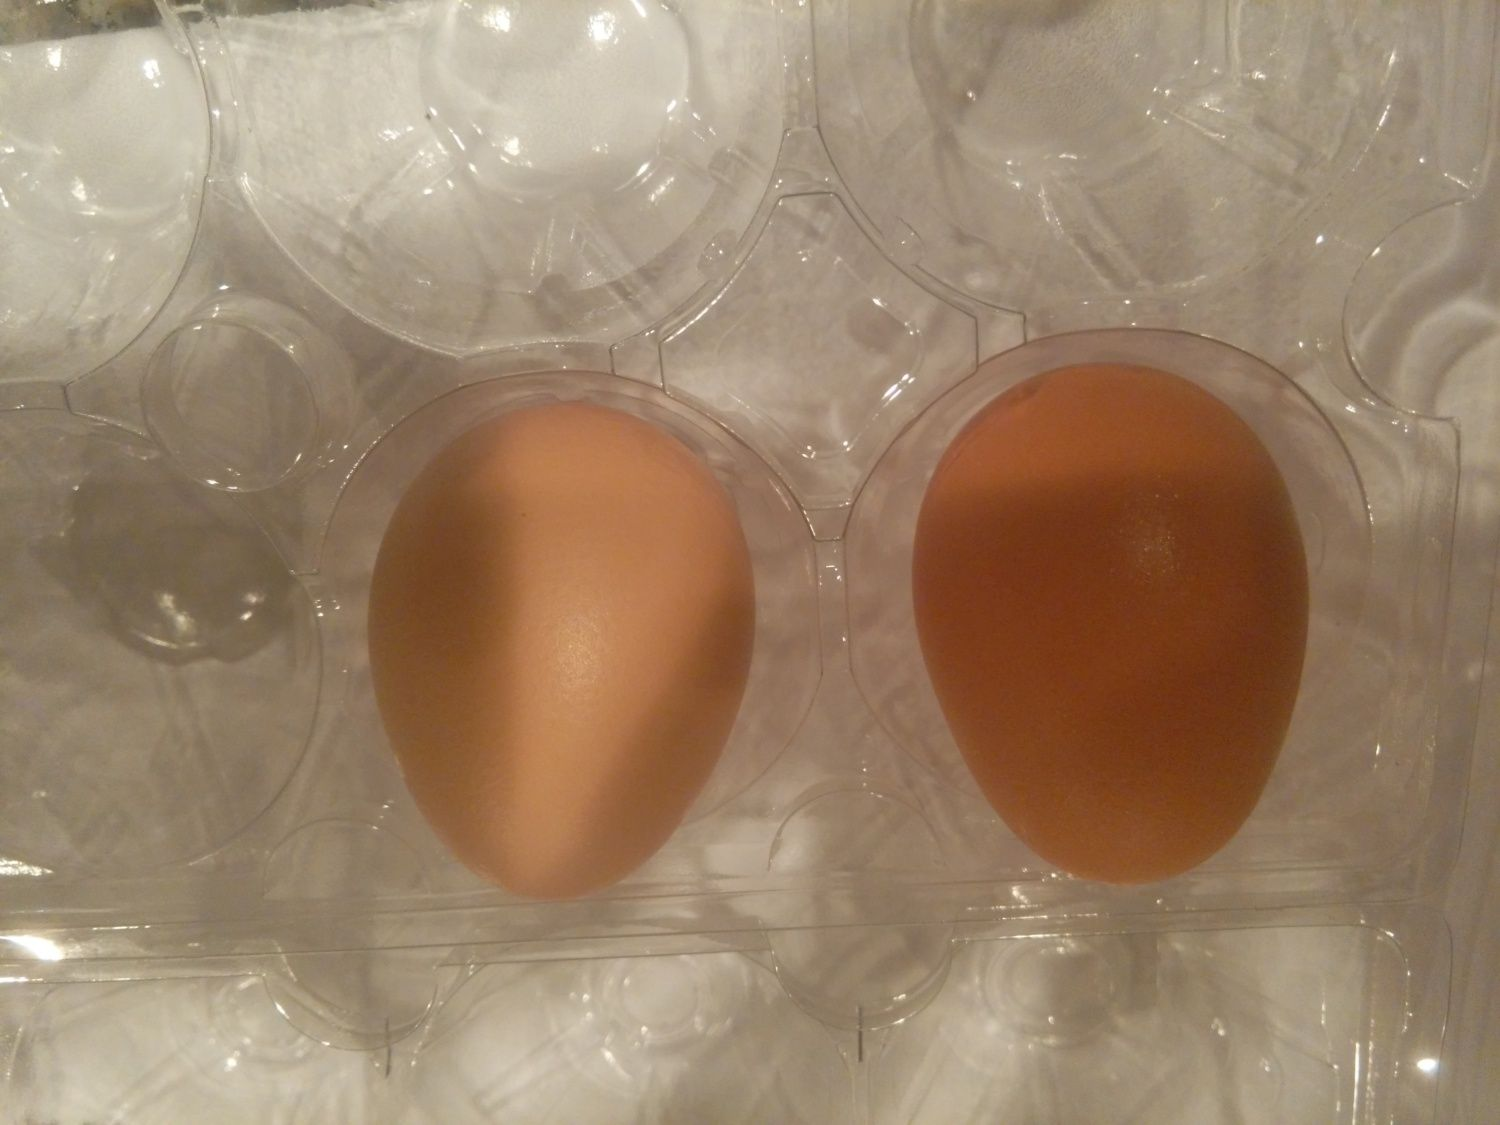 first 2 eggs